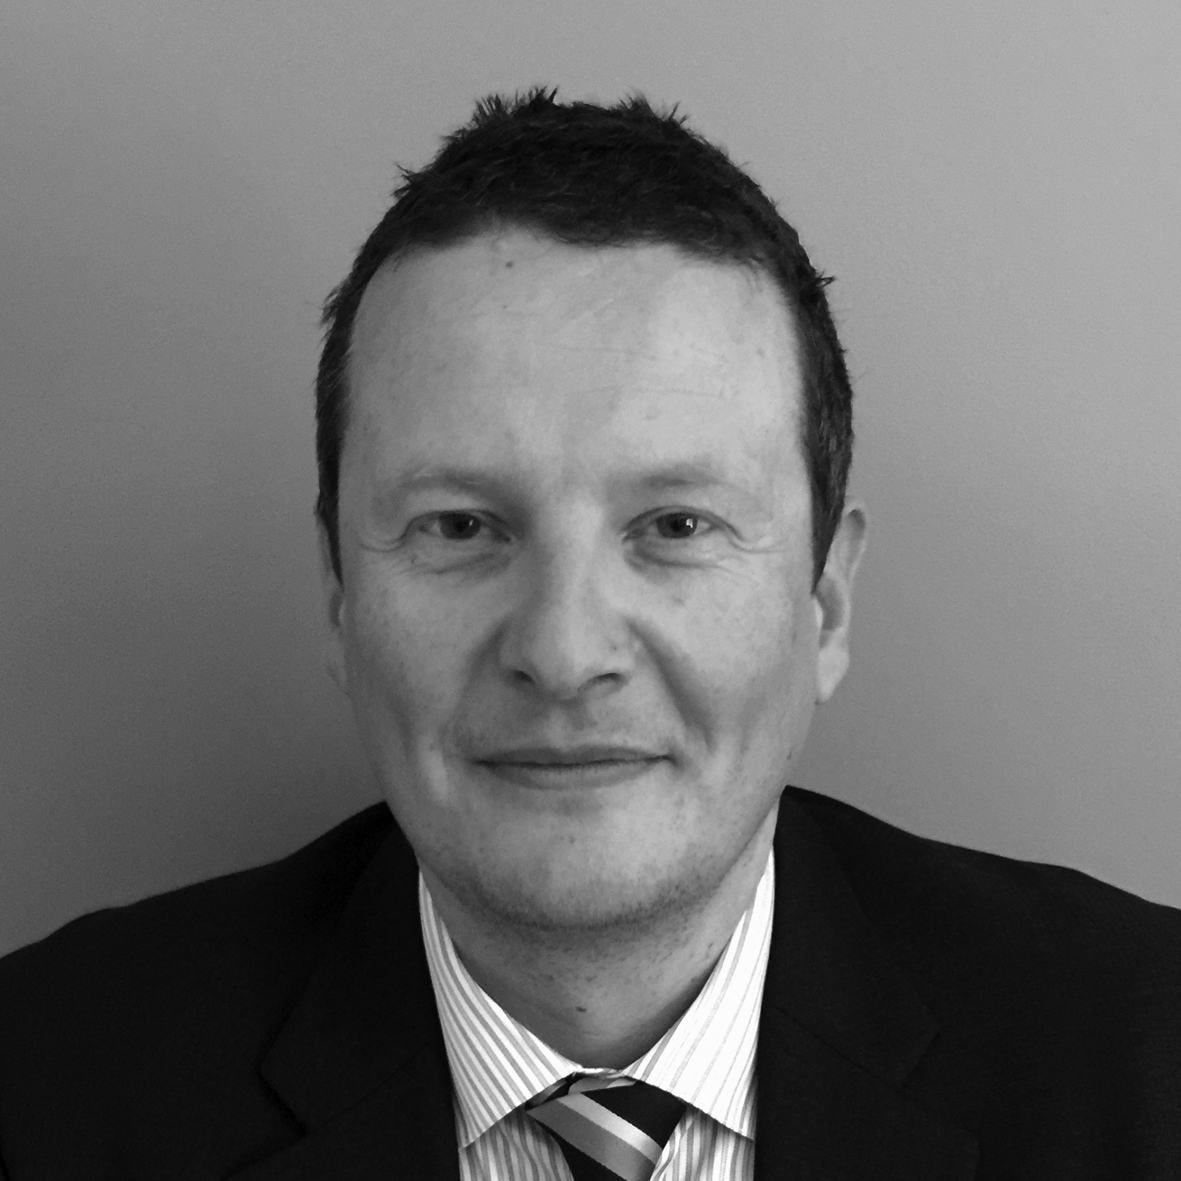 DR OLIVER KREUZER - NON-EXECUTIVE DIRECTOR